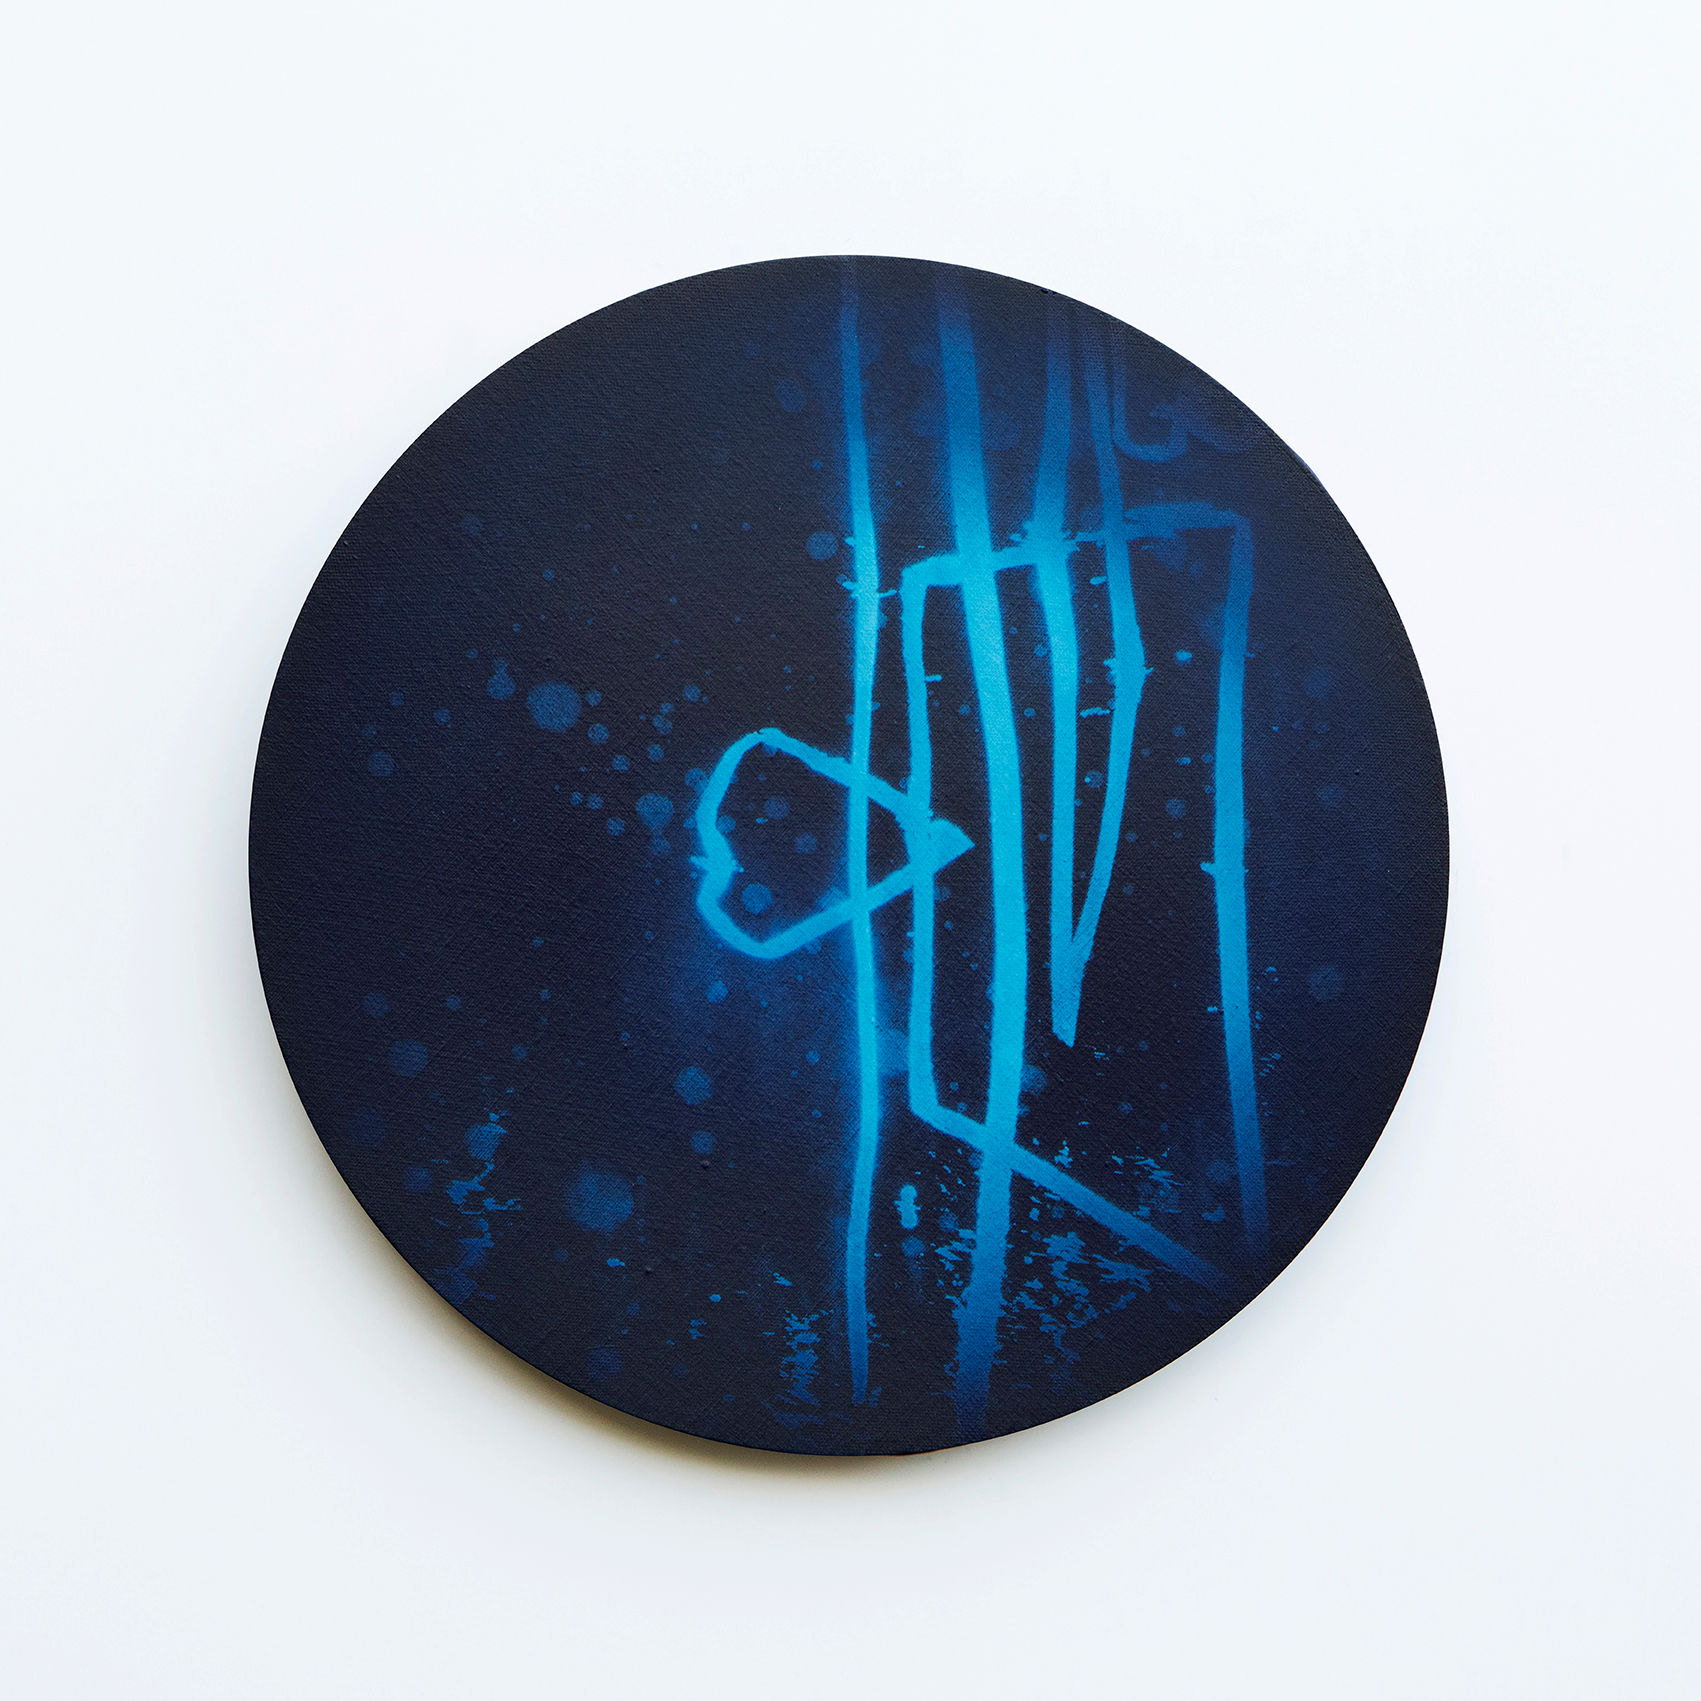 WATERSCAPE_내 안의 바깥 22, Diameter 40cm, Traditional pigment, water-print, water-drawing on canvas, 2018